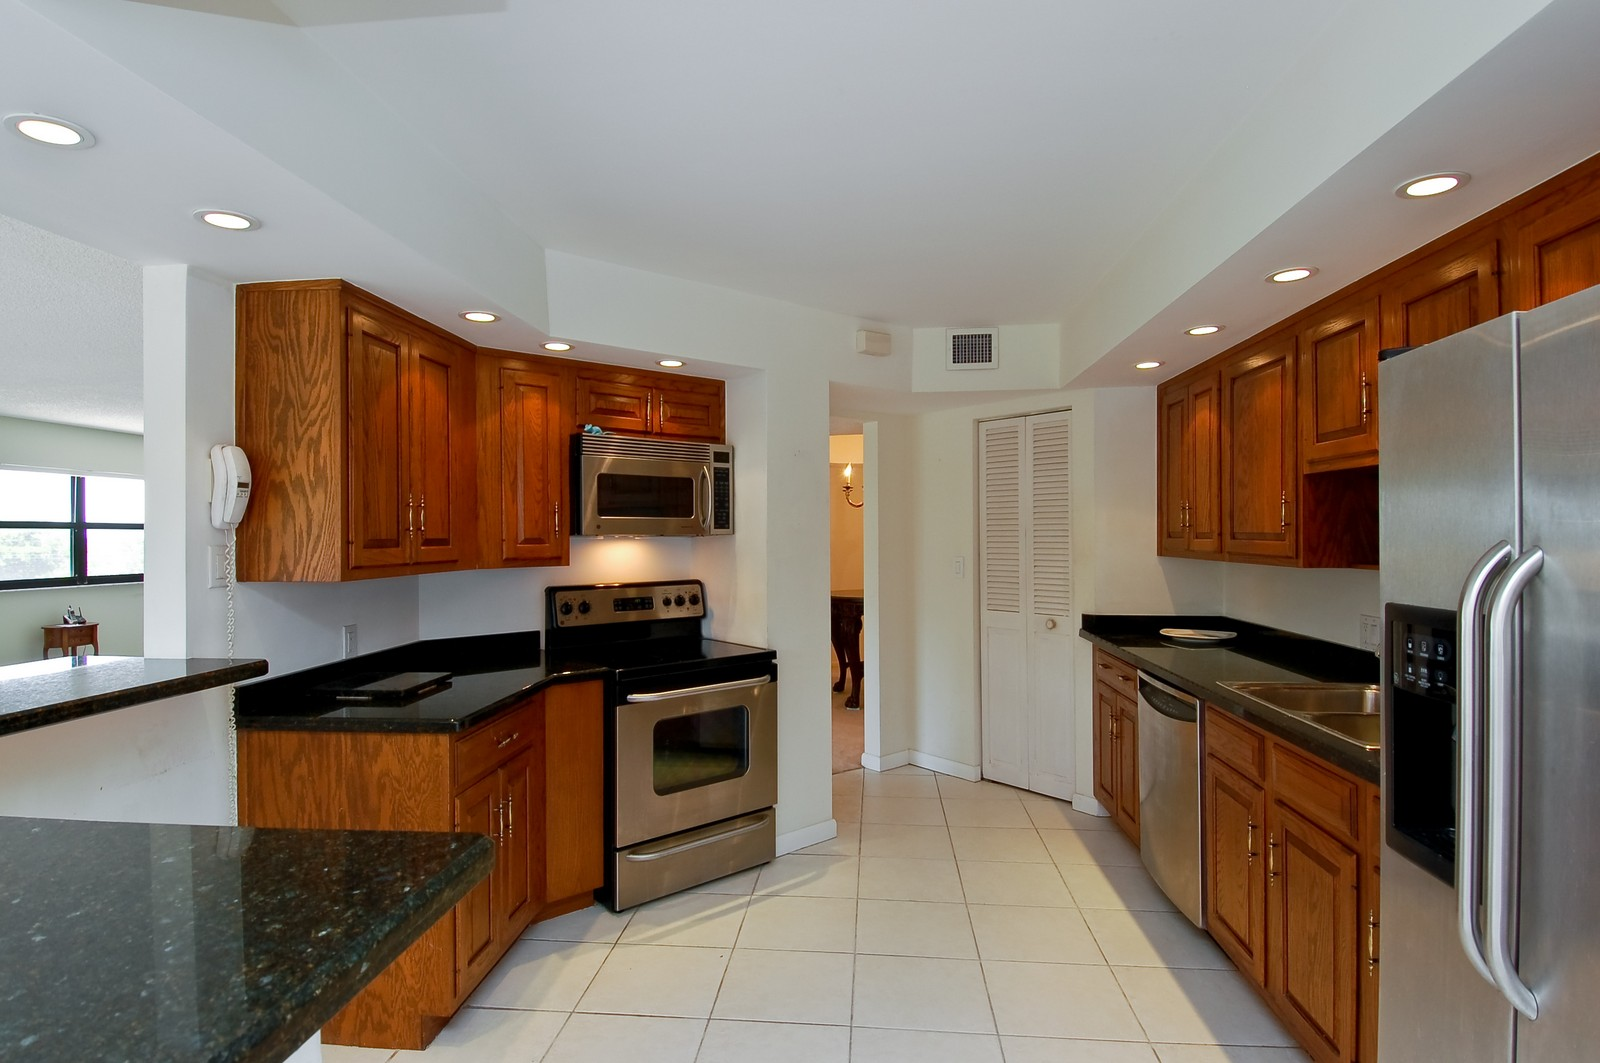 Real Estate Photography - 4605 S Ocean Blvd, Unit 3B, Highland Beach, FL, 33487 - Location 4